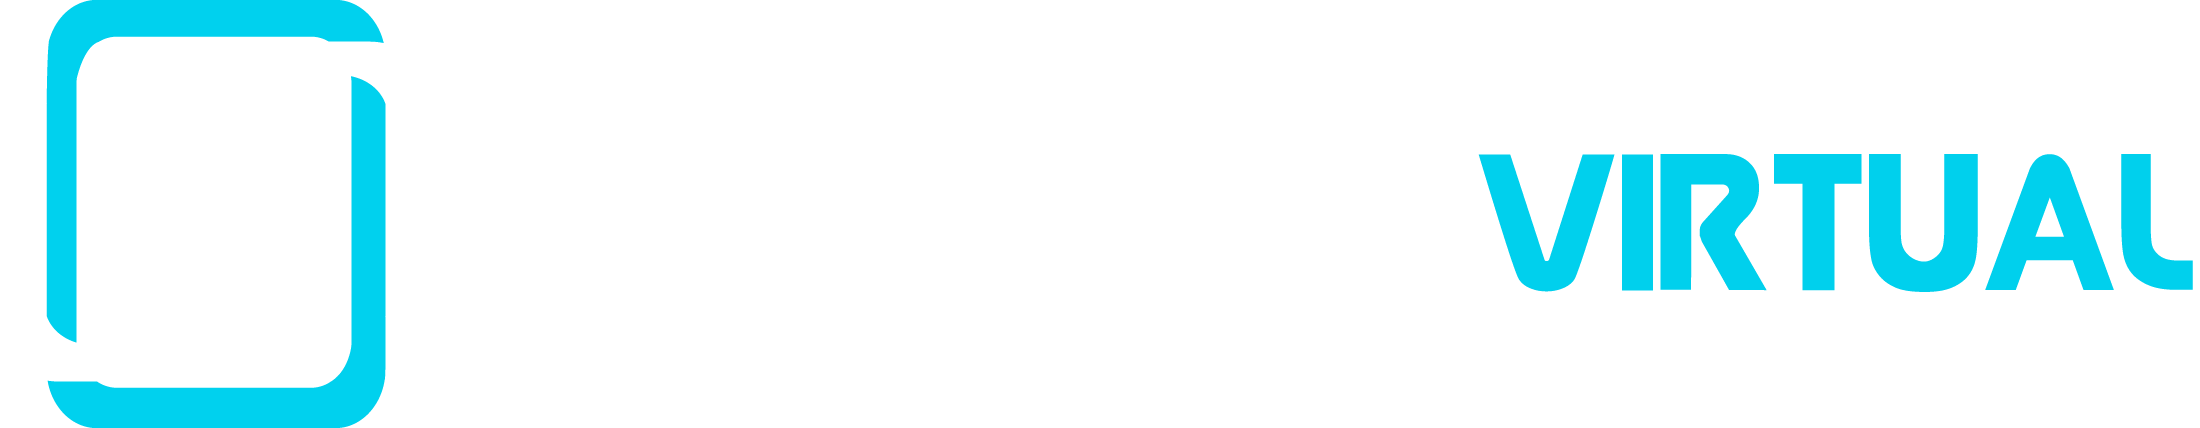 La Ventana Virtual